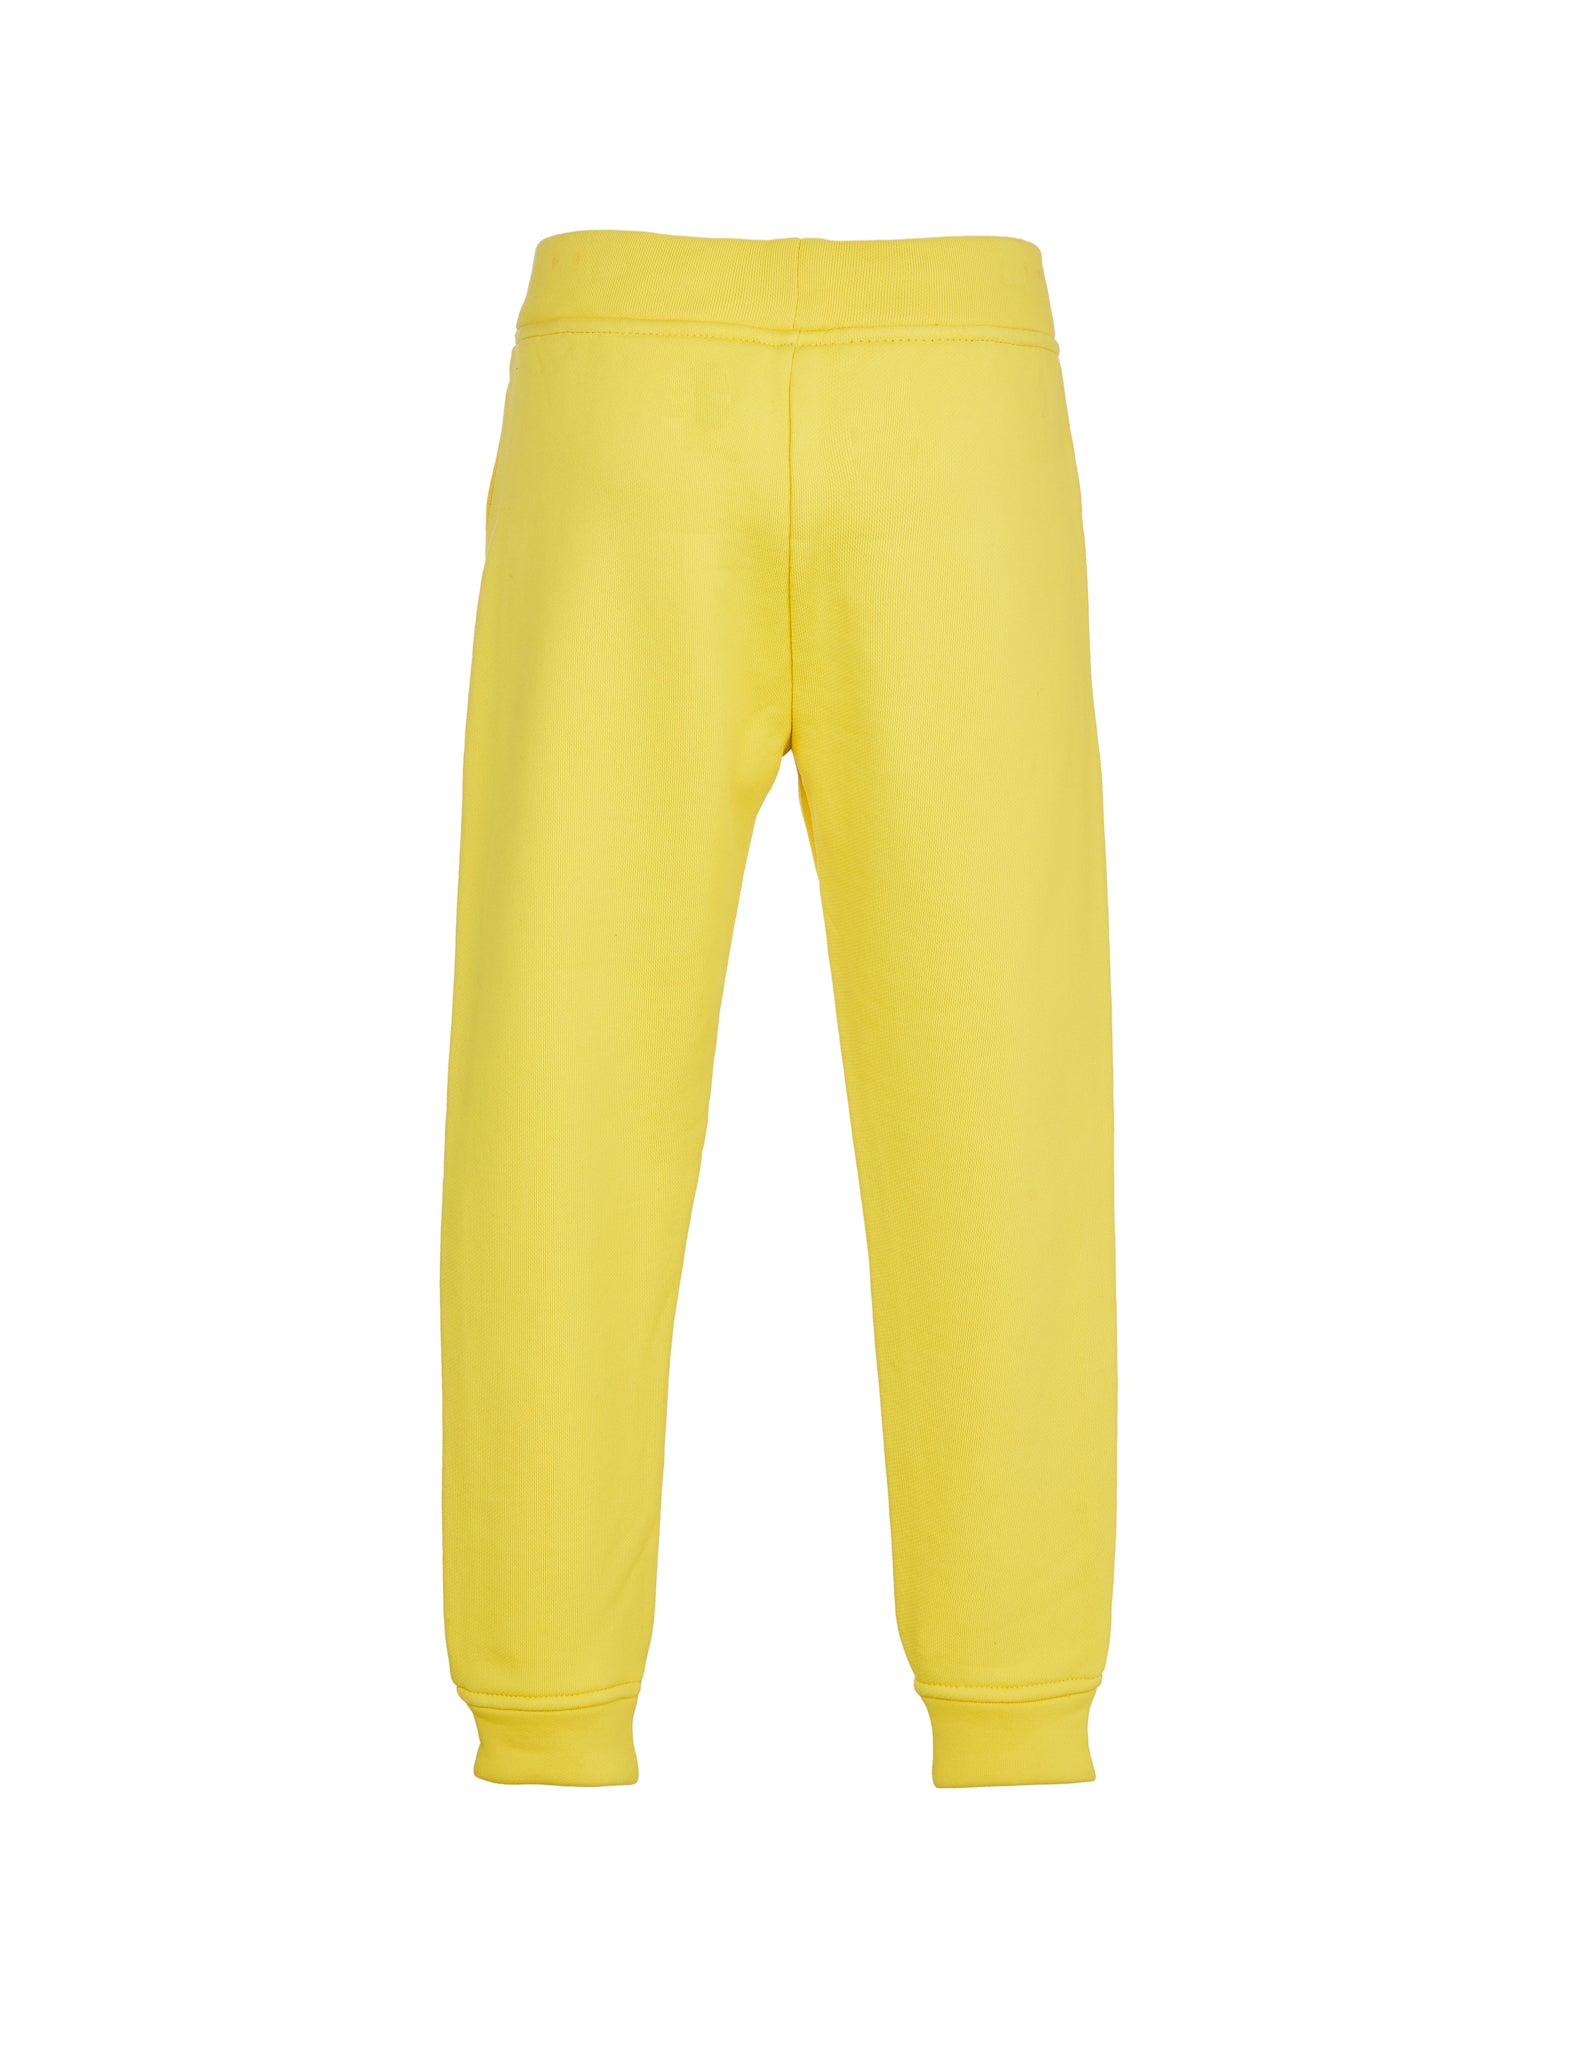 ELASTIC CUFF TROUSERS IN YELLOW